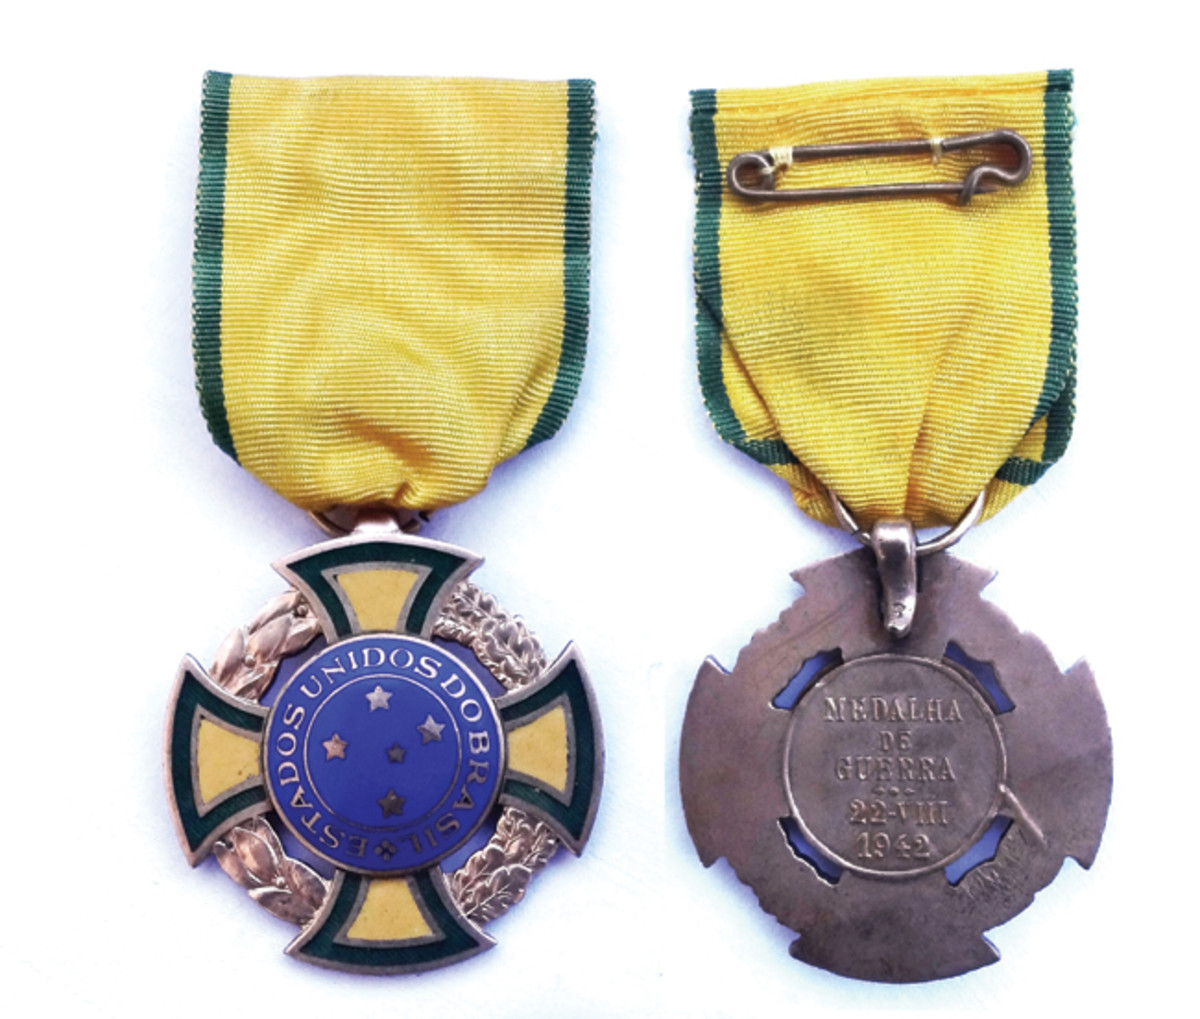 """The War Medal bears the legend, """"ESTADOS UNIDOS DO BRASIL"""" (""""United States of Brazil""""). This was Brazil's official name until 1967. The date is a reference to when Brazil entered the war."""